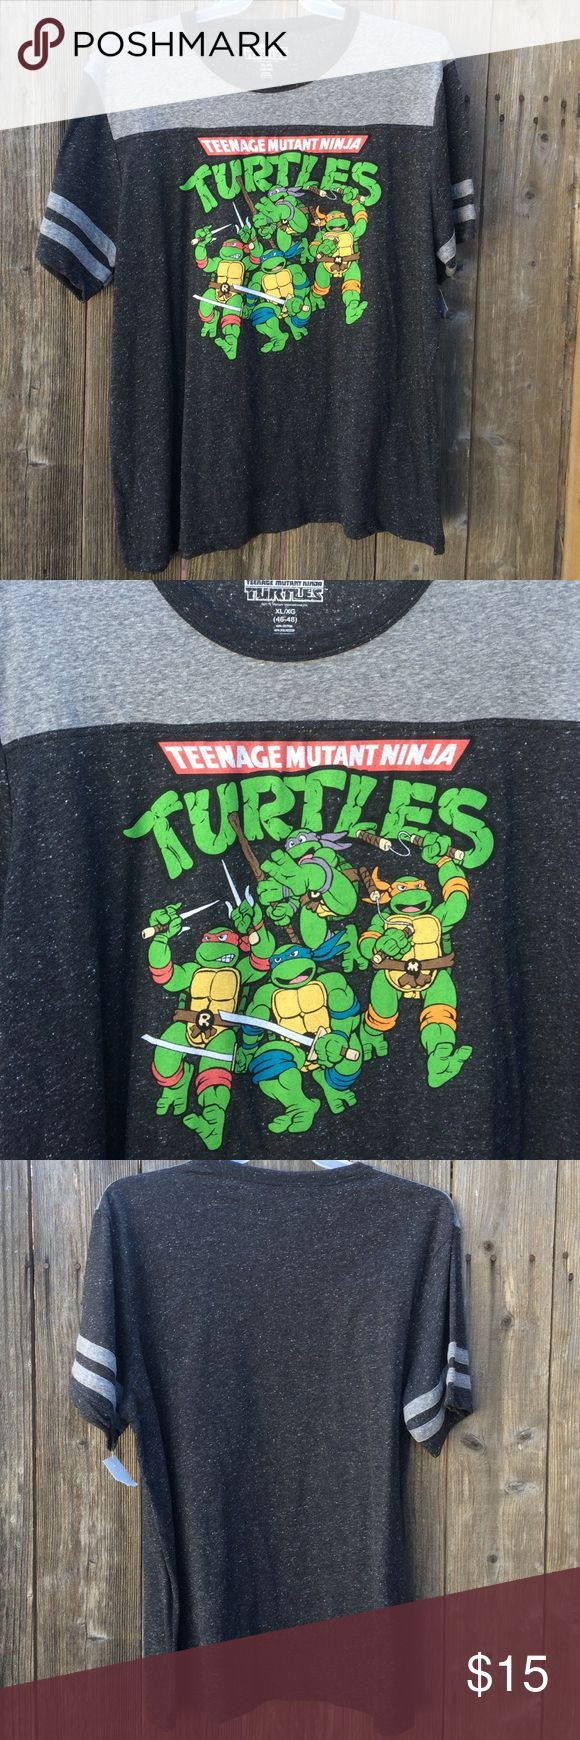 NWT Ninja Turtles Men's Tee New with tags men's tee. Ninja turtles graphic. Brand new never worn. Size XL 60% cotton, 40% polyester. Open to offers!! Any questions?? Please ask! I ship same day!📬📦🎁 Nickelodeon Shirts Tees - Short Sleeve